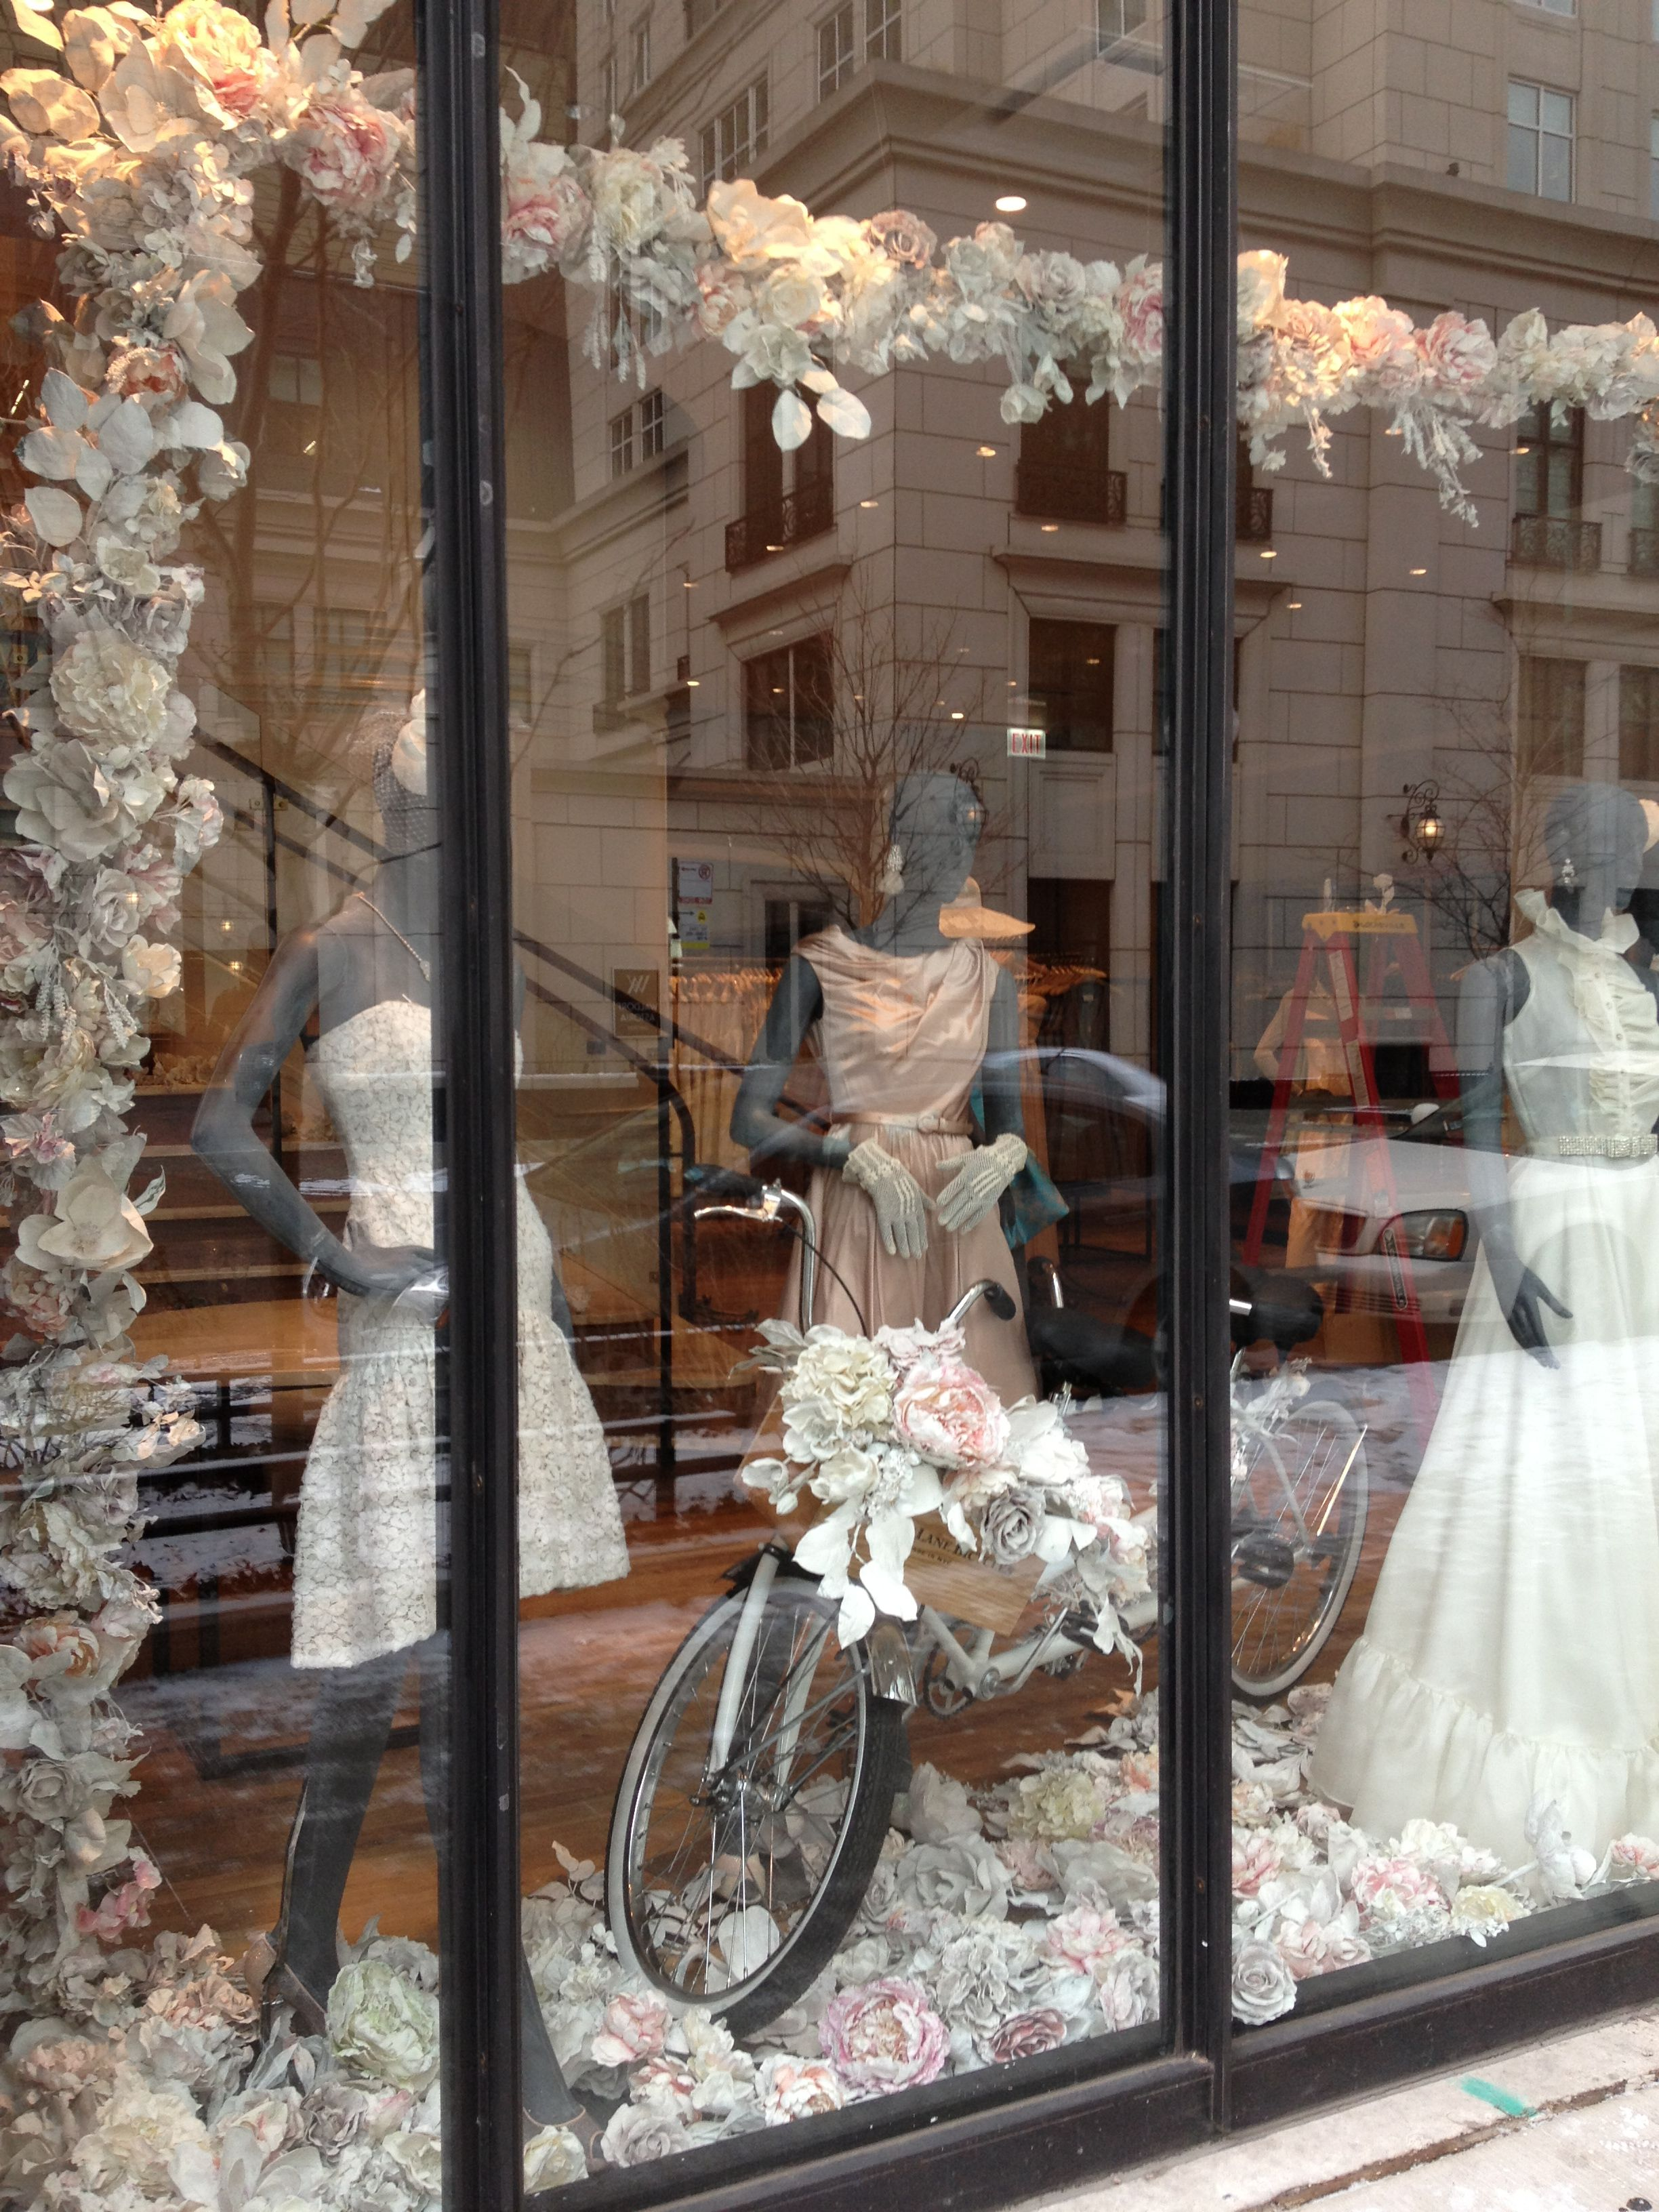 Window display ideas for jewellery  our houston storeus spring windows  jewelry display ideas